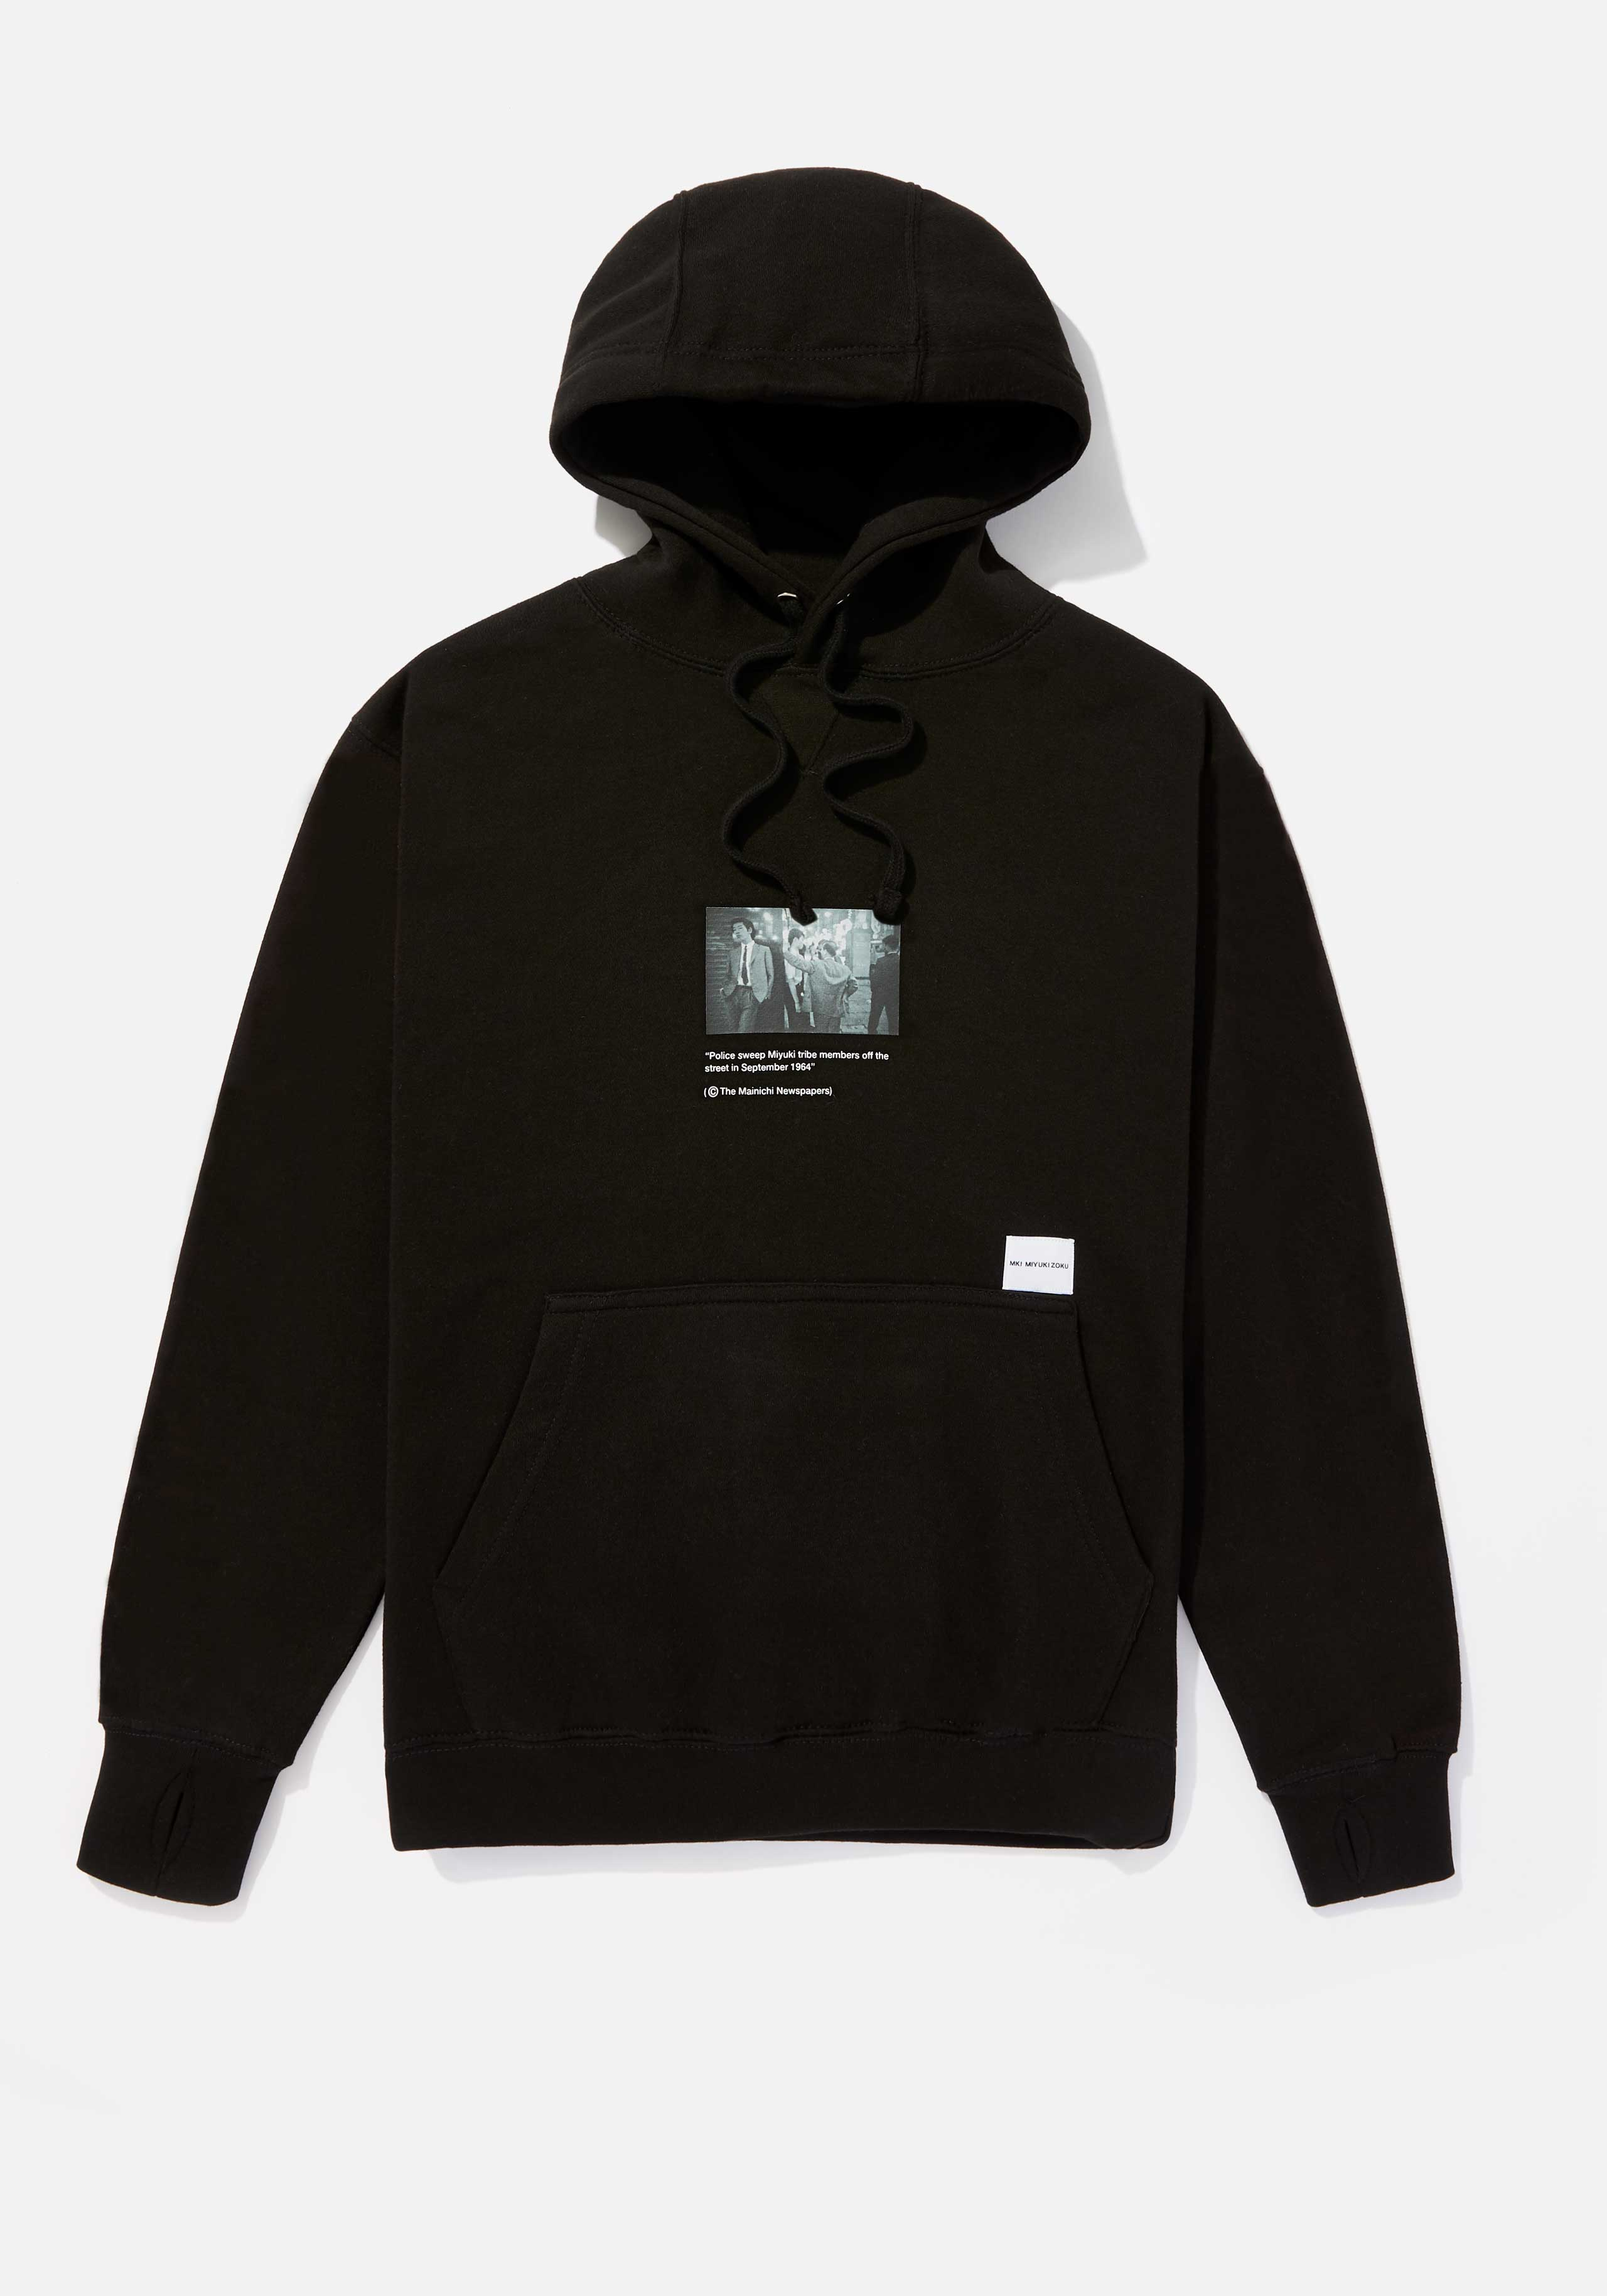 mki article hoody 1